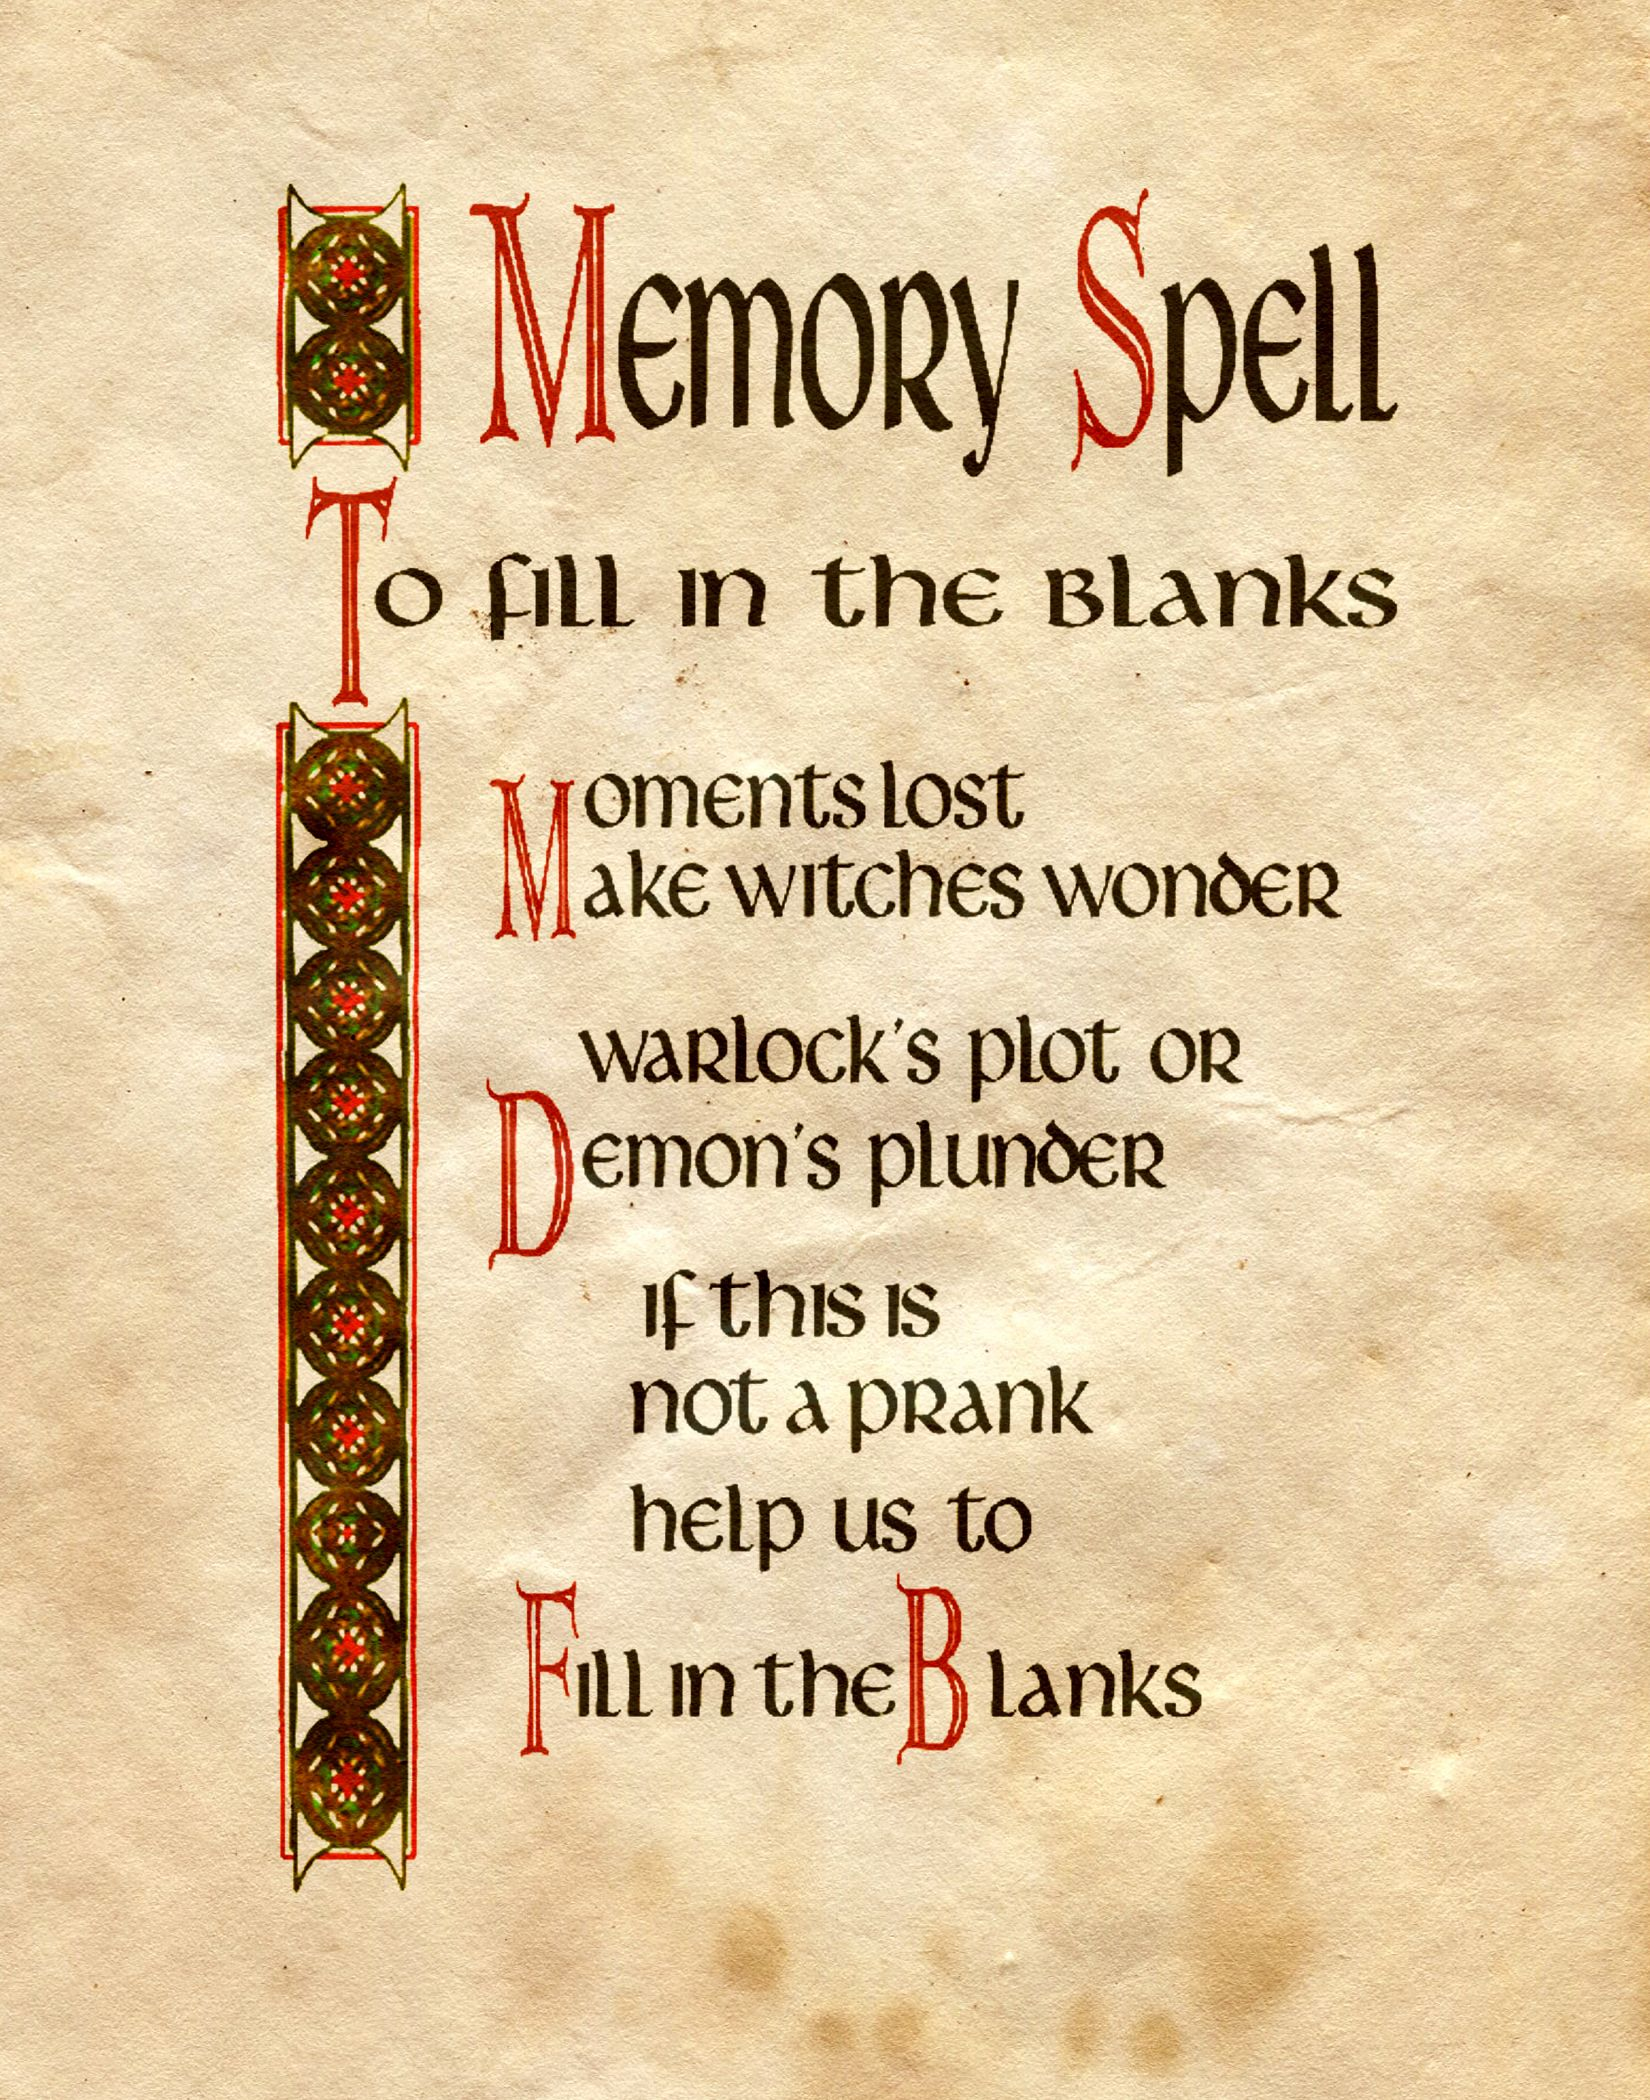 """Memory spell - to fill in the blanks"" - Charmed - Book of Shadows"